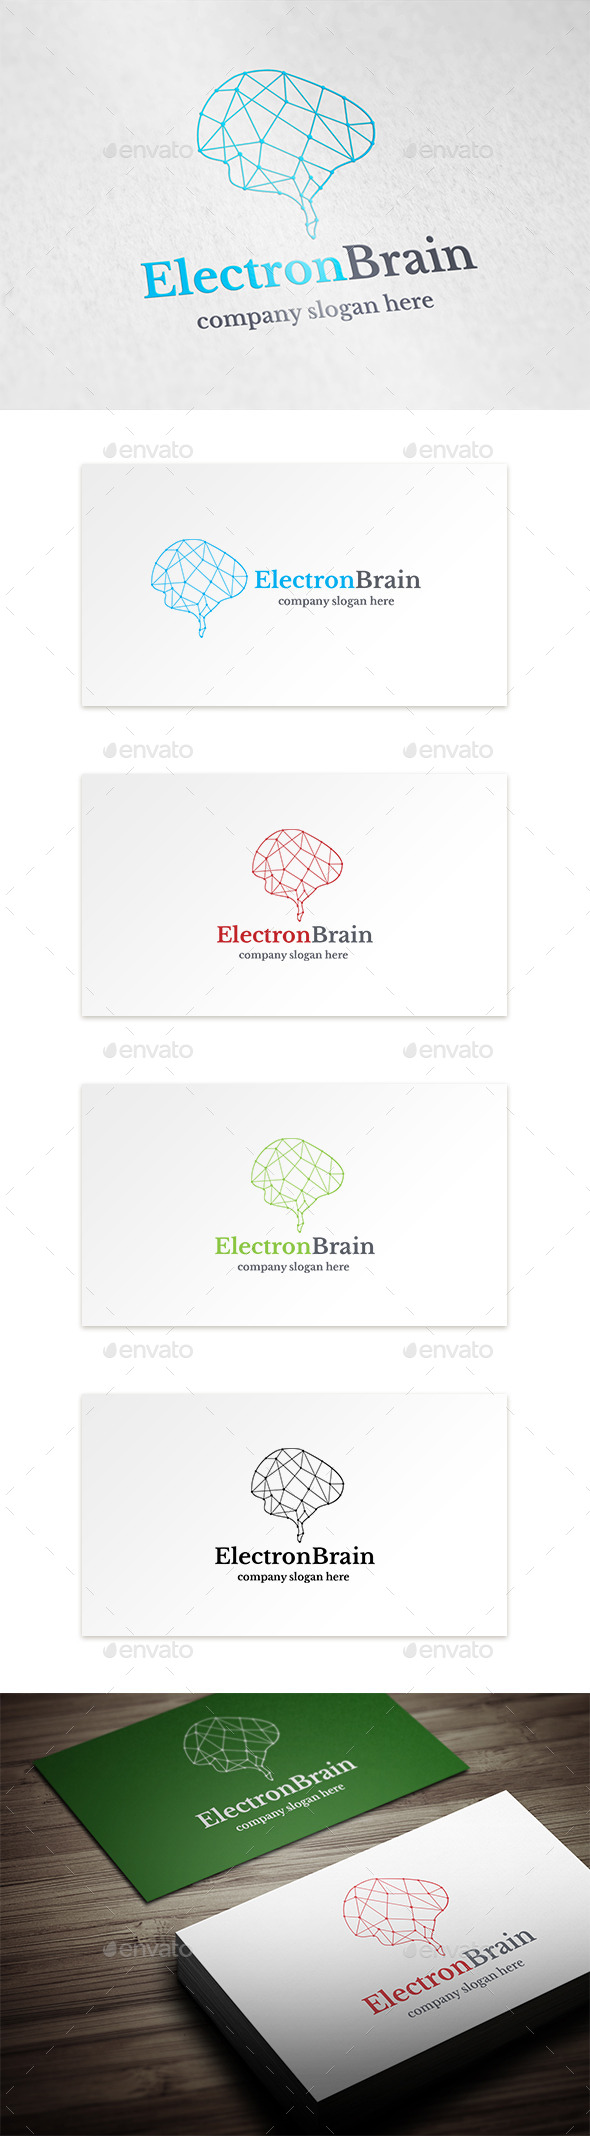 GraphicRiver Electron Brain 9209616